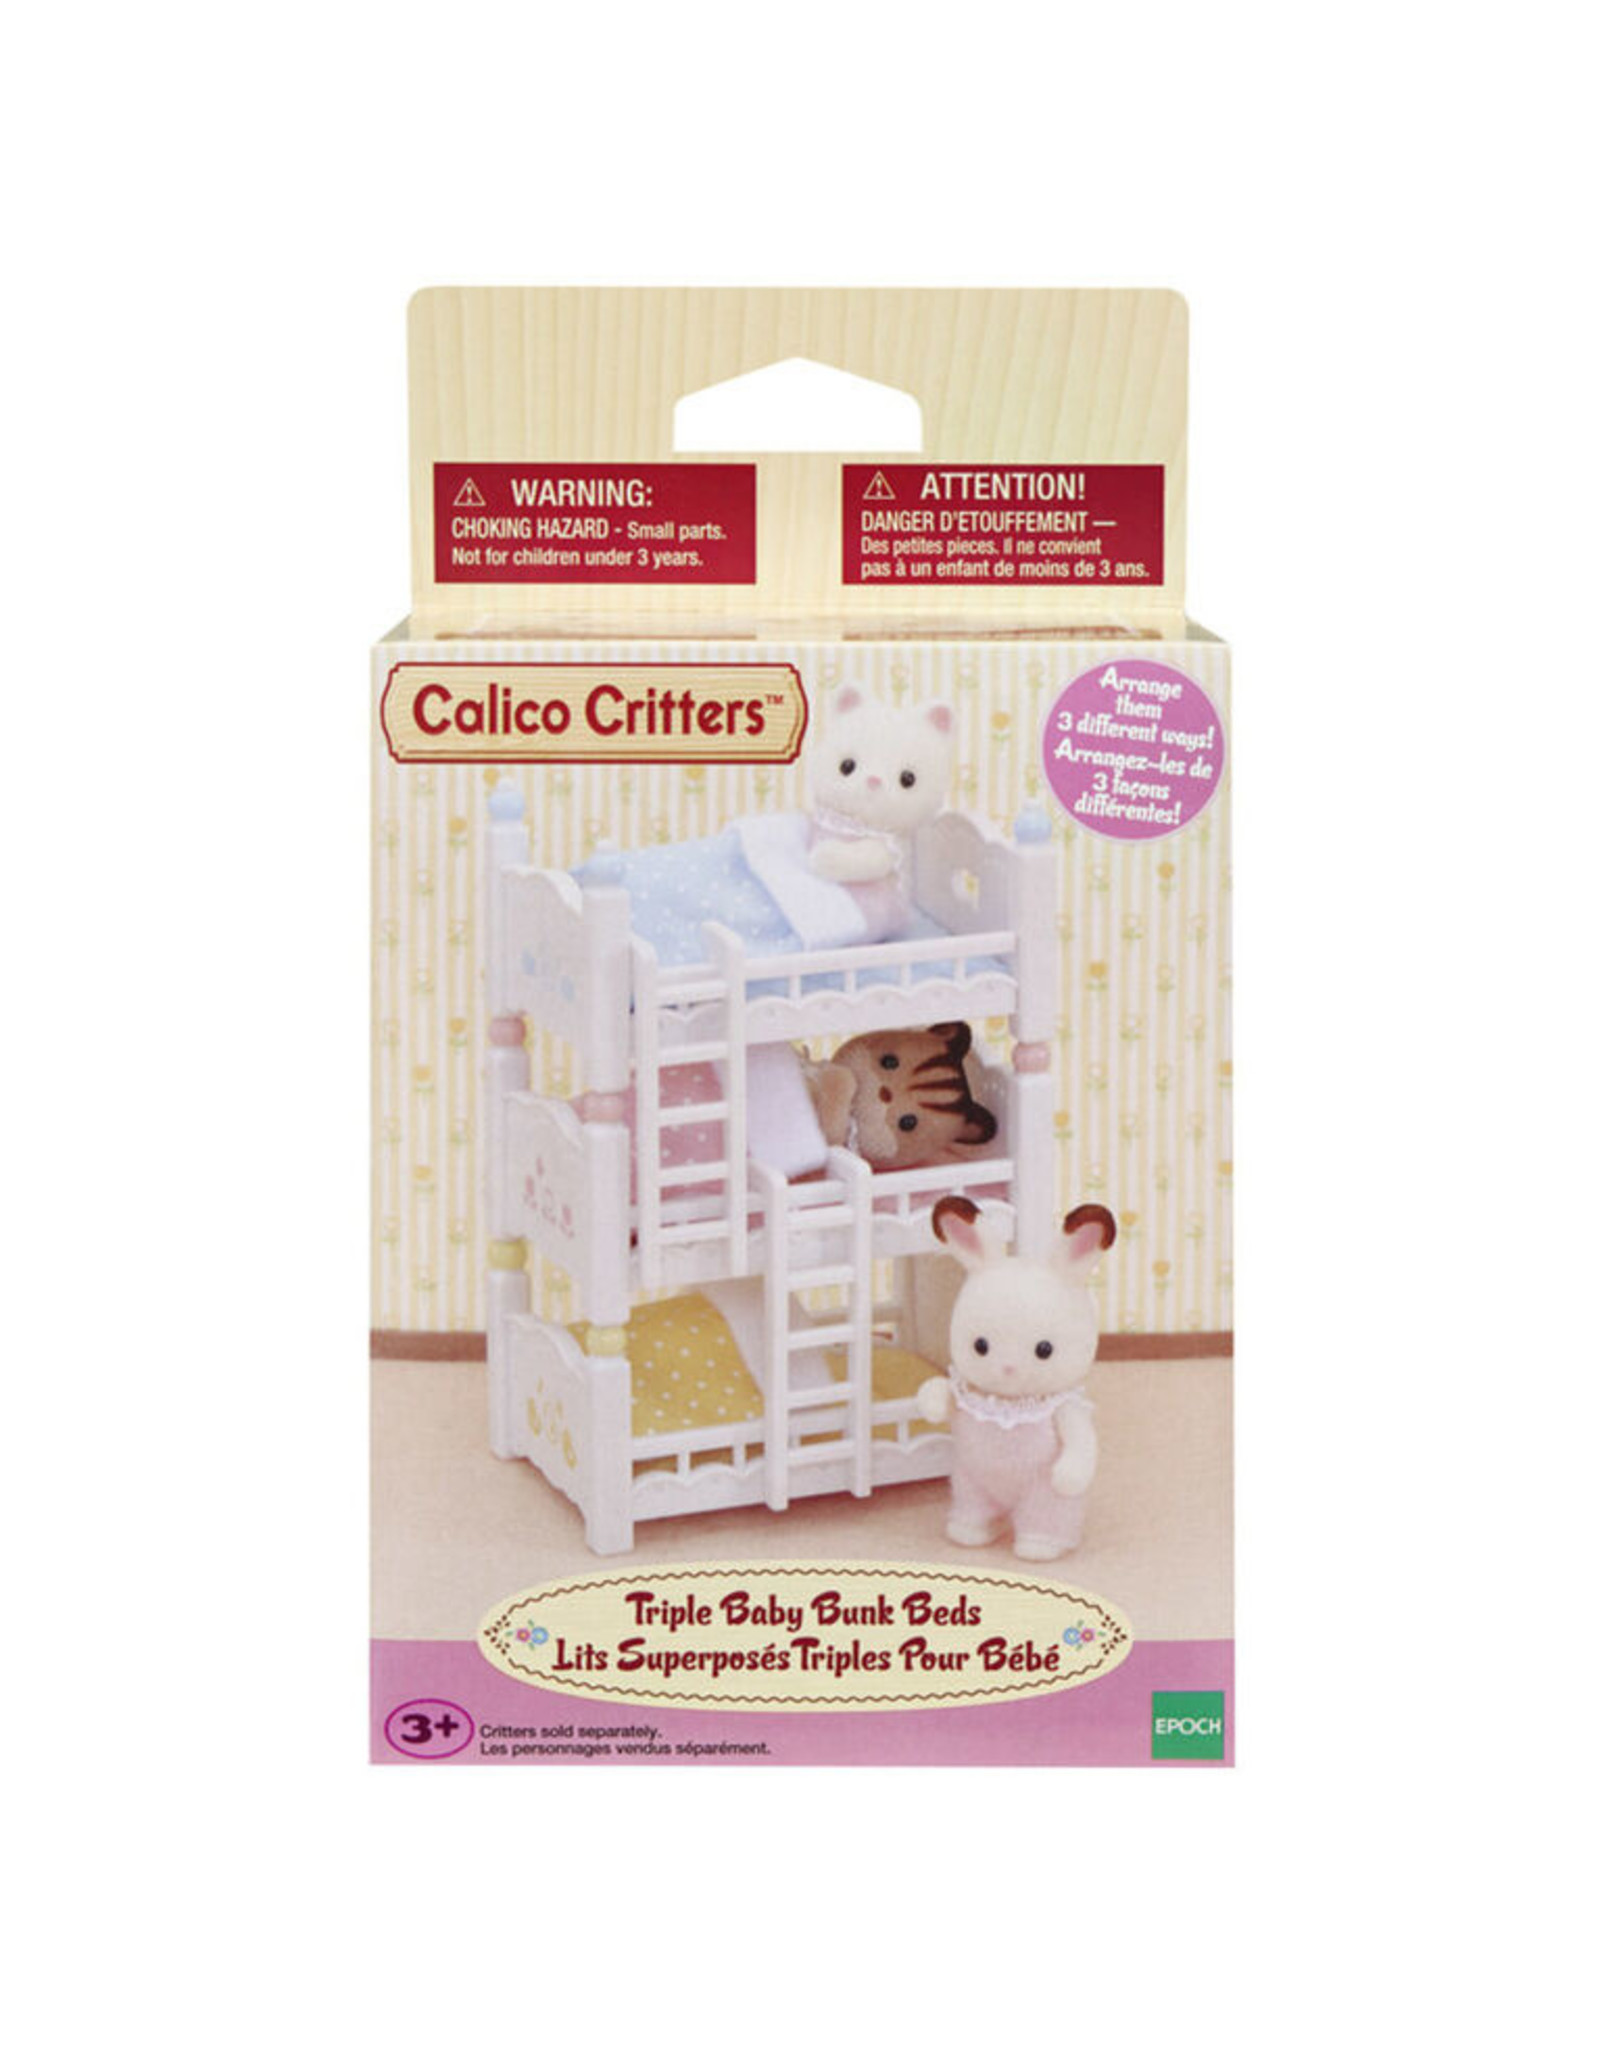 Calico Critters Calico Critters Triple Baby Bunk Beds